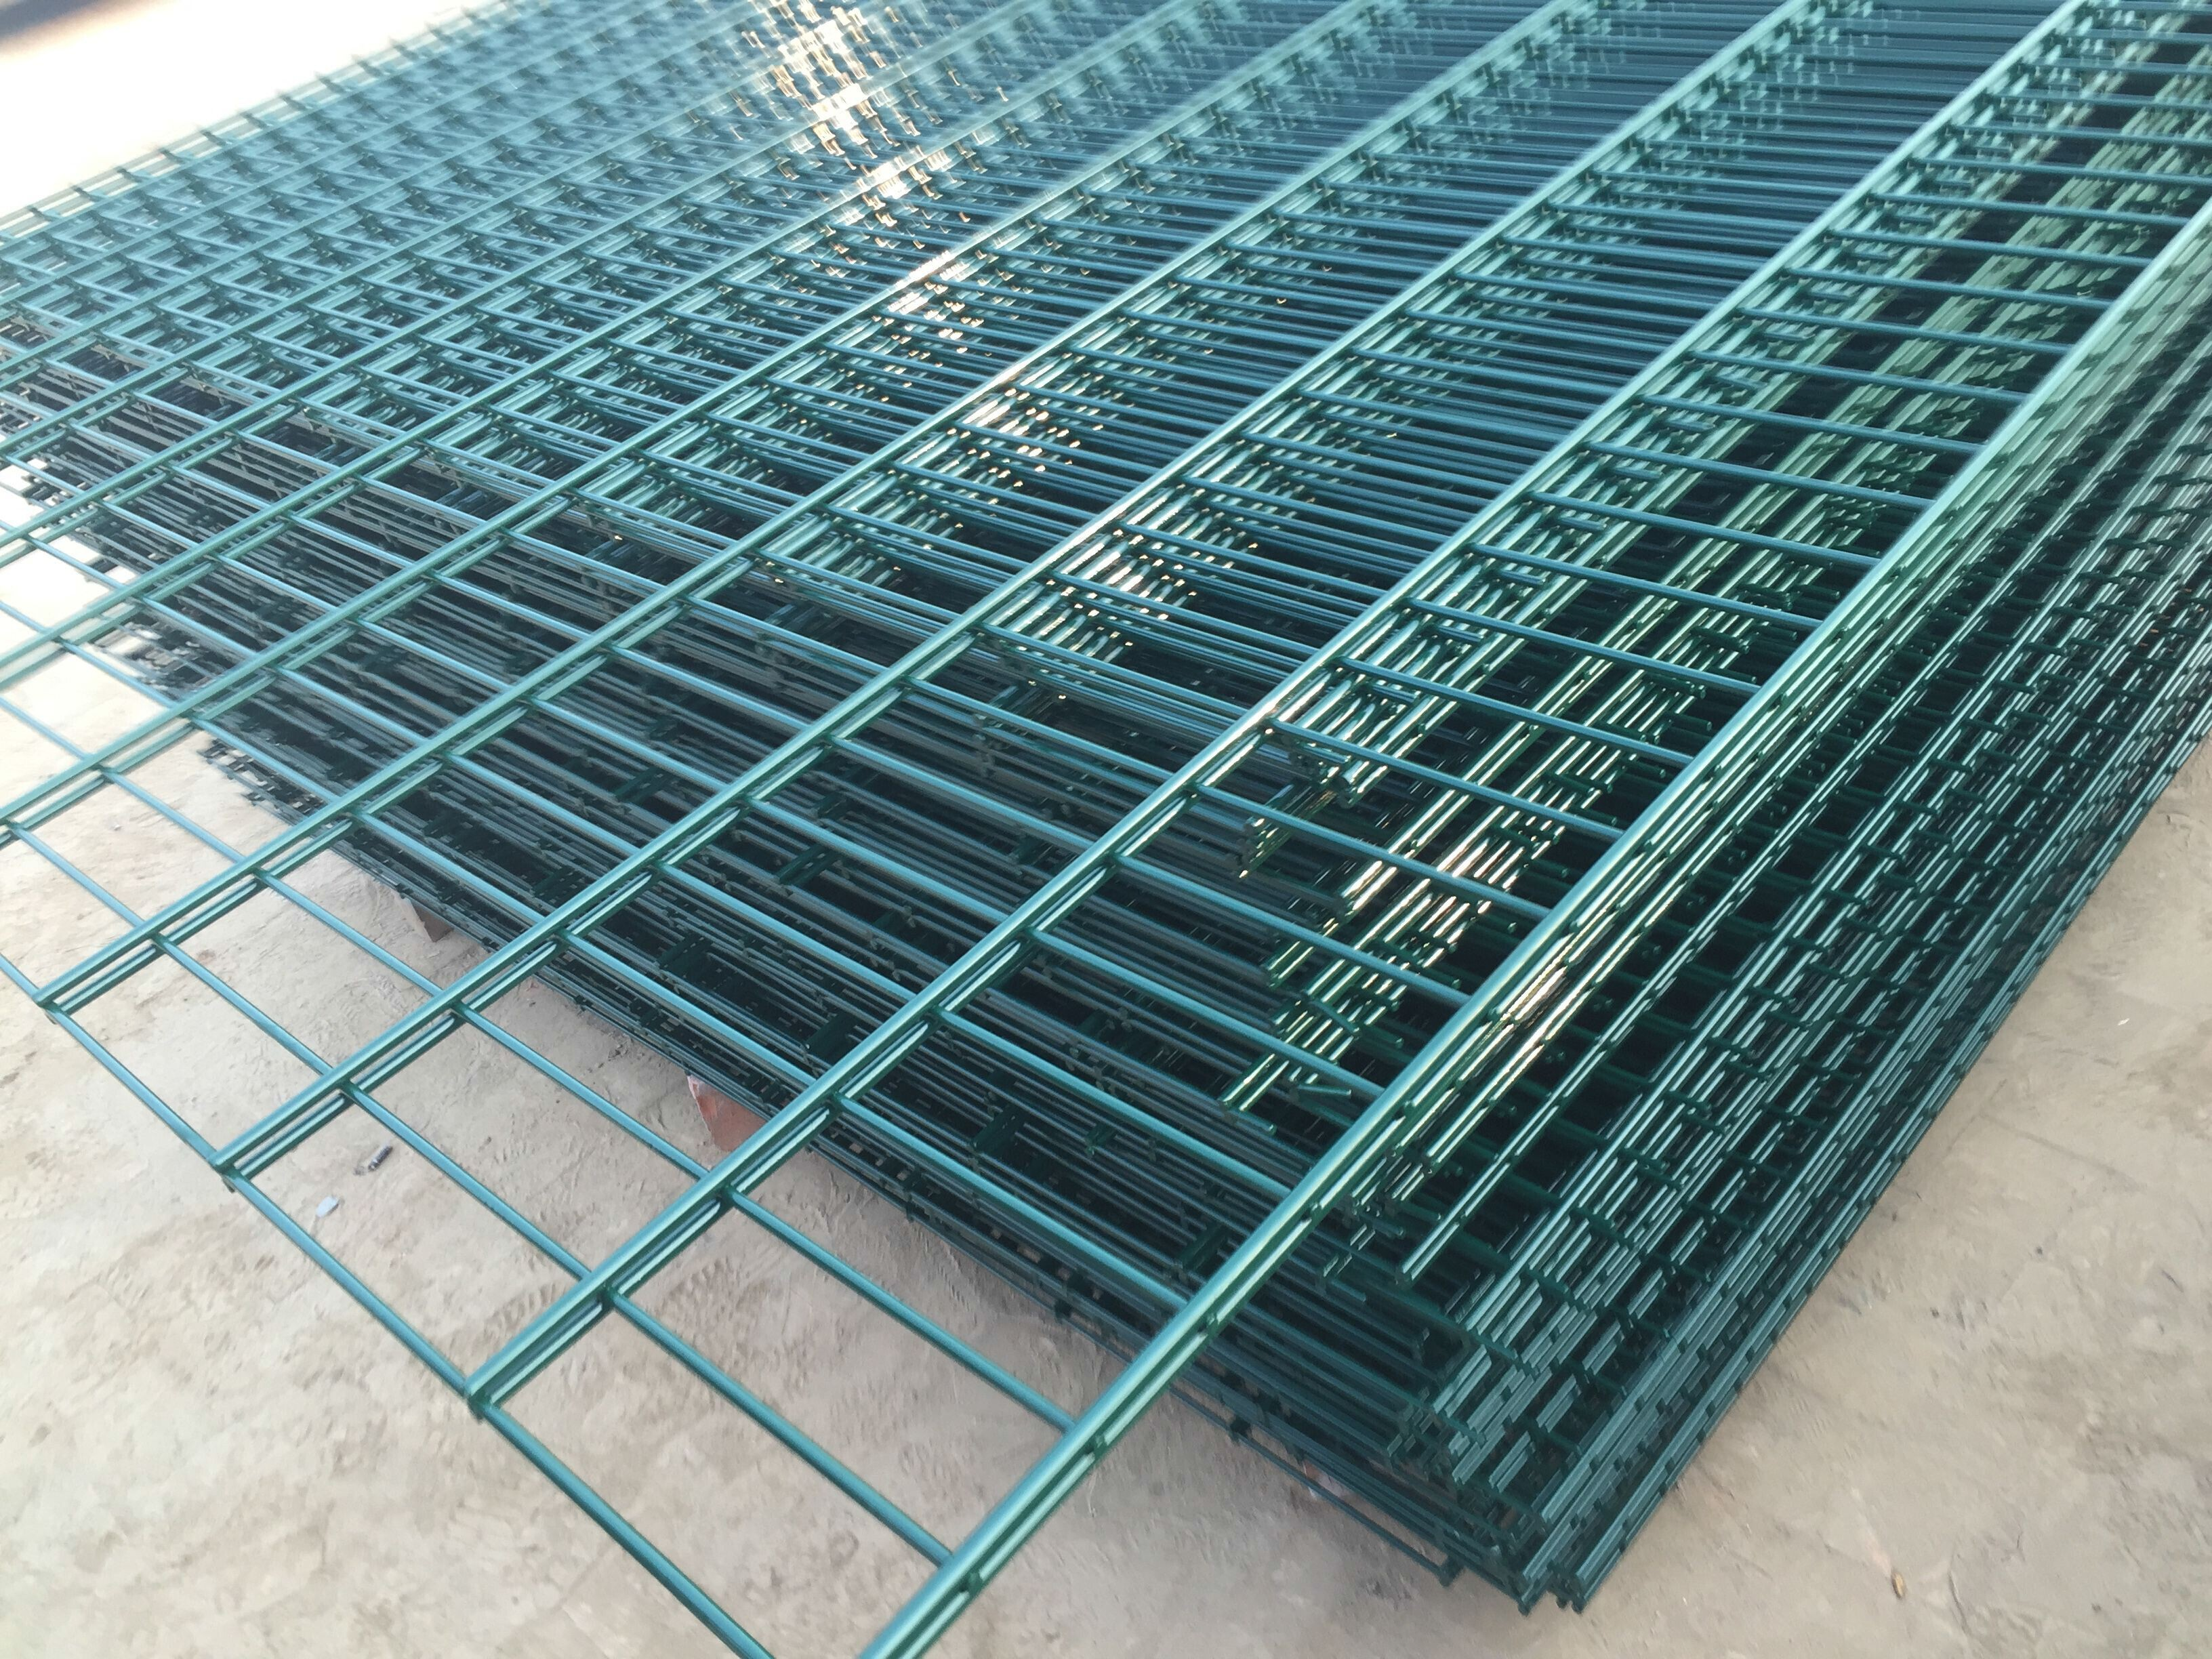 New machine production double wire fencing